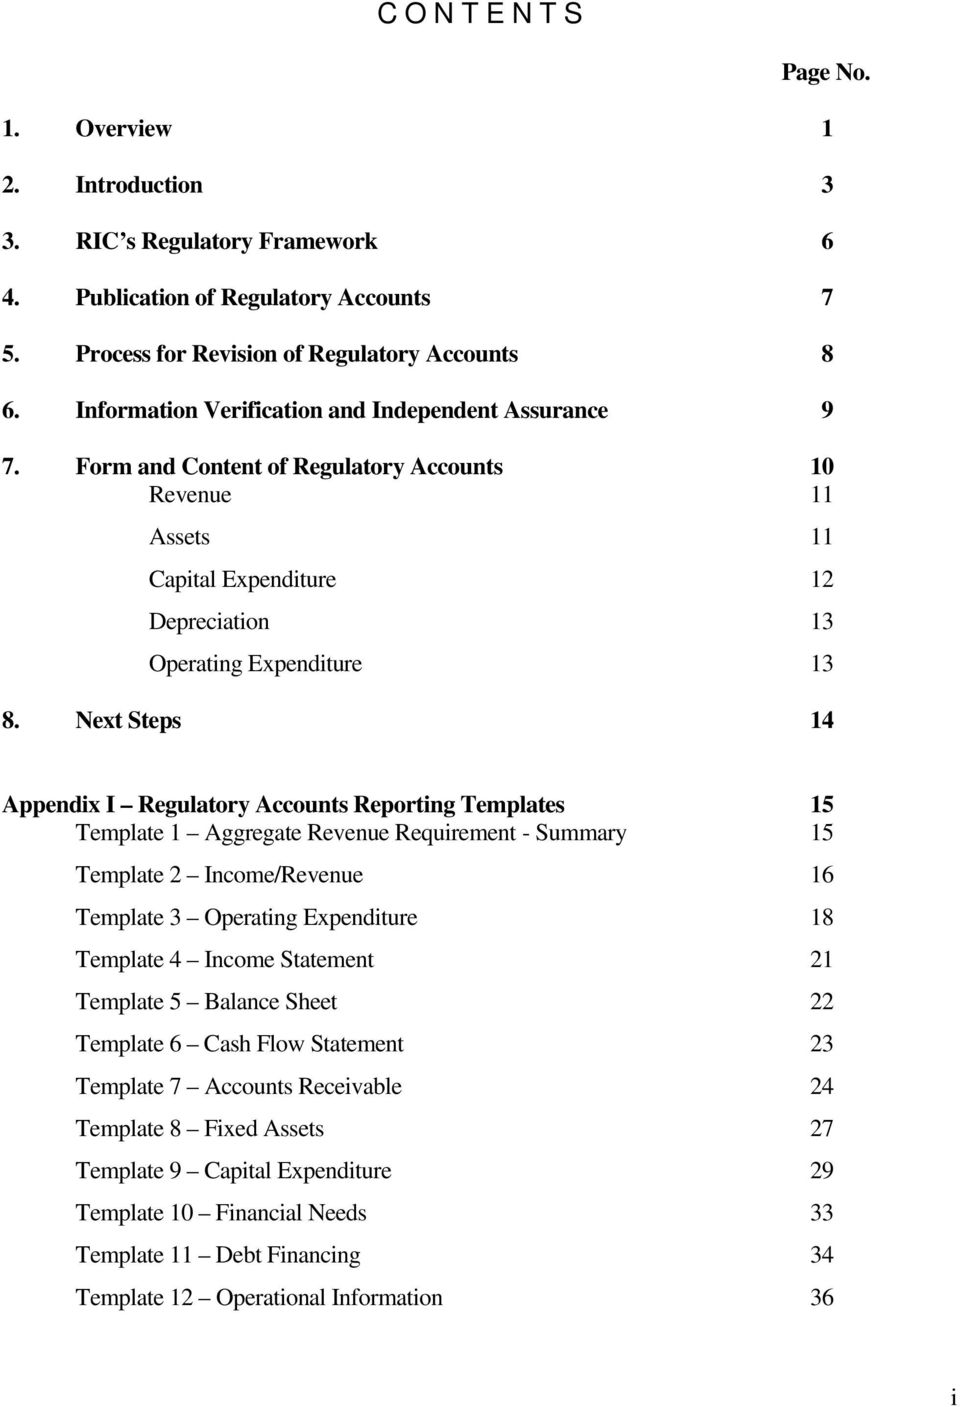 Next Steps 14 Appendix I Regulatory Accounts Reporting Templates 15 Template 1 Aggregate Revenue Requirement - Summary 15 Template 2 Income/Revenue 16 Template 3 Operating Expenditure 18 Template 4